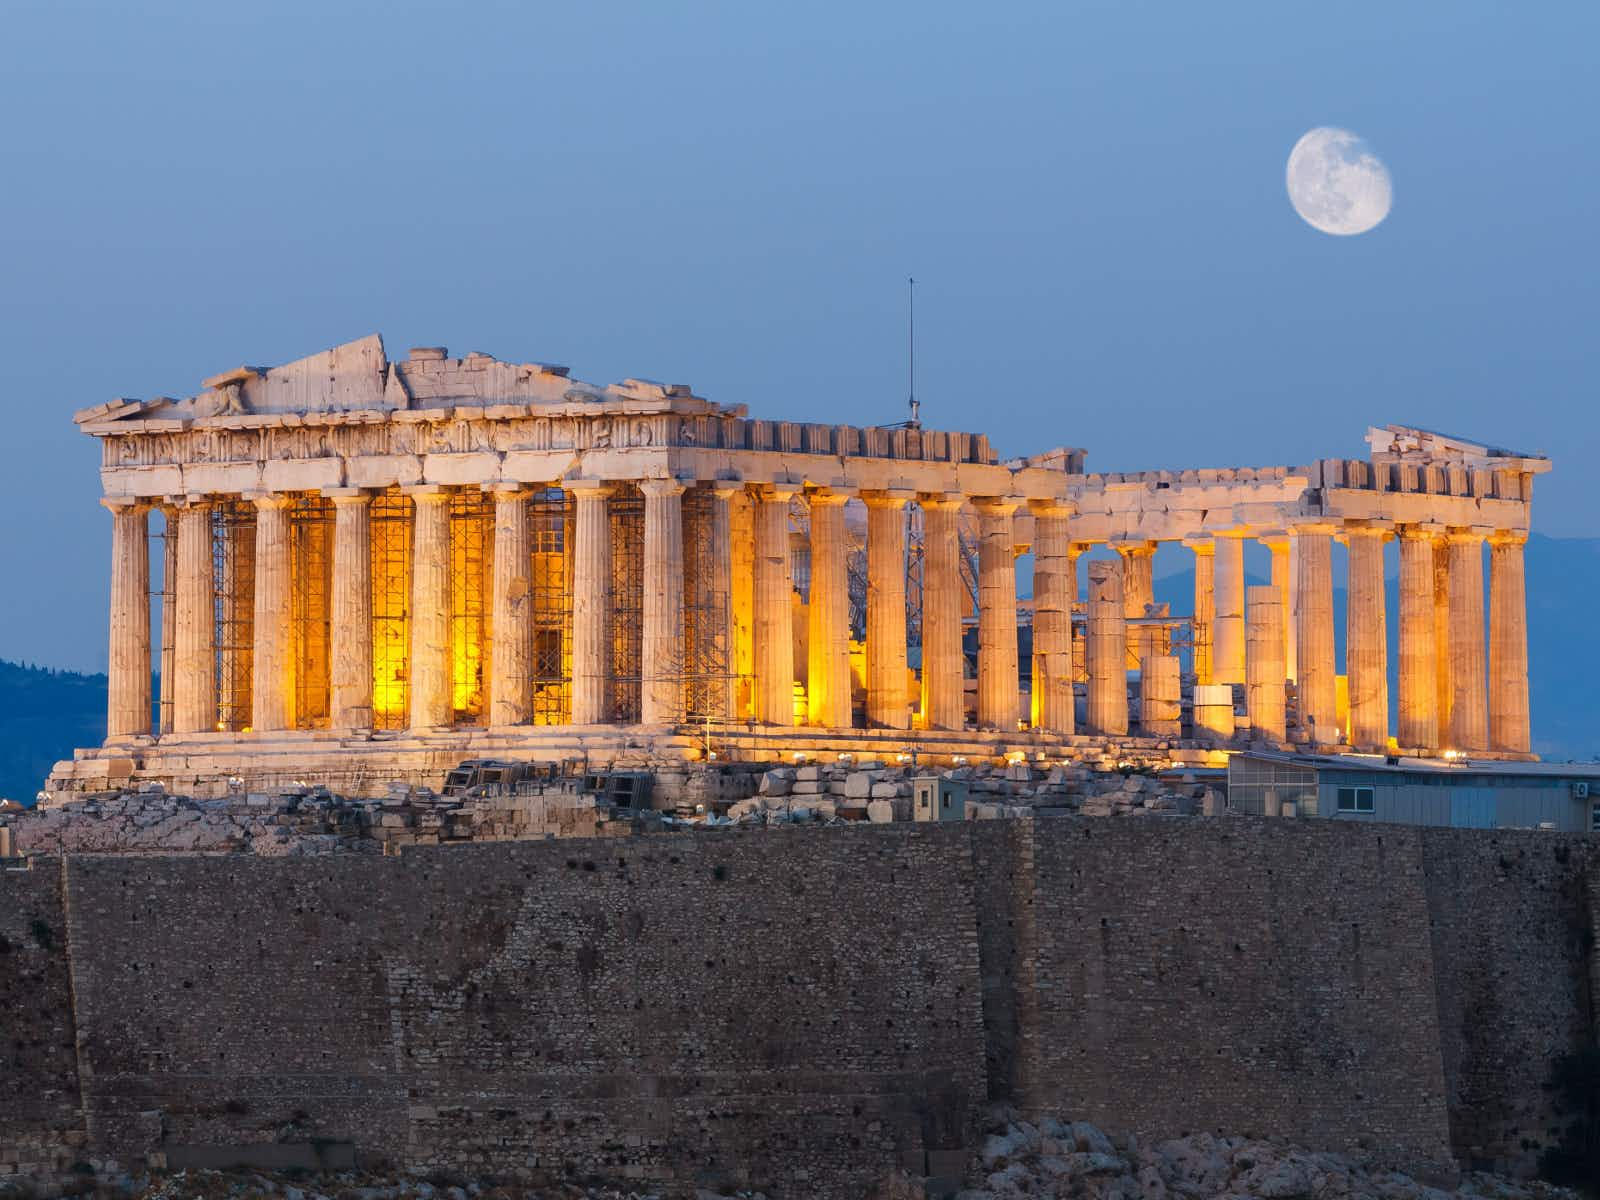 The glorious Parthenon on Acropolis hill in Athens in the early evening © PNIK / Shutterstock